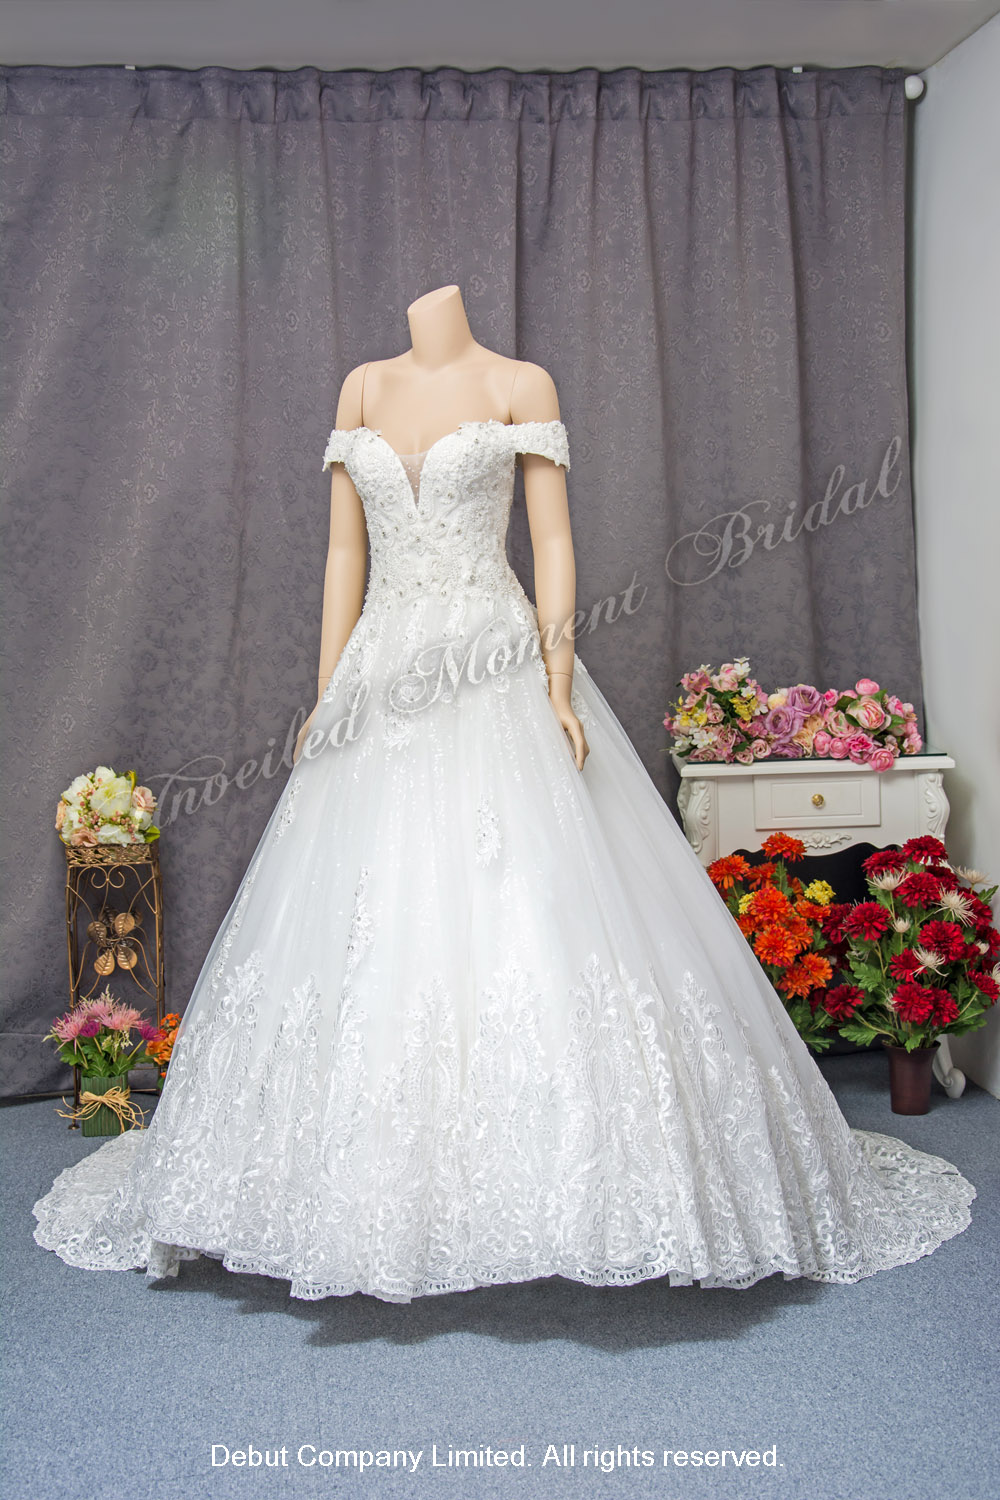 Off-the-shoulder, deep-V neckline, lace applique embellishments, ball wedding gown with court train. 一字膊, 大V領口, 蕾絲閃石釘珠, 蕾絲花邊長拖尾, 公主傘裙婚紗